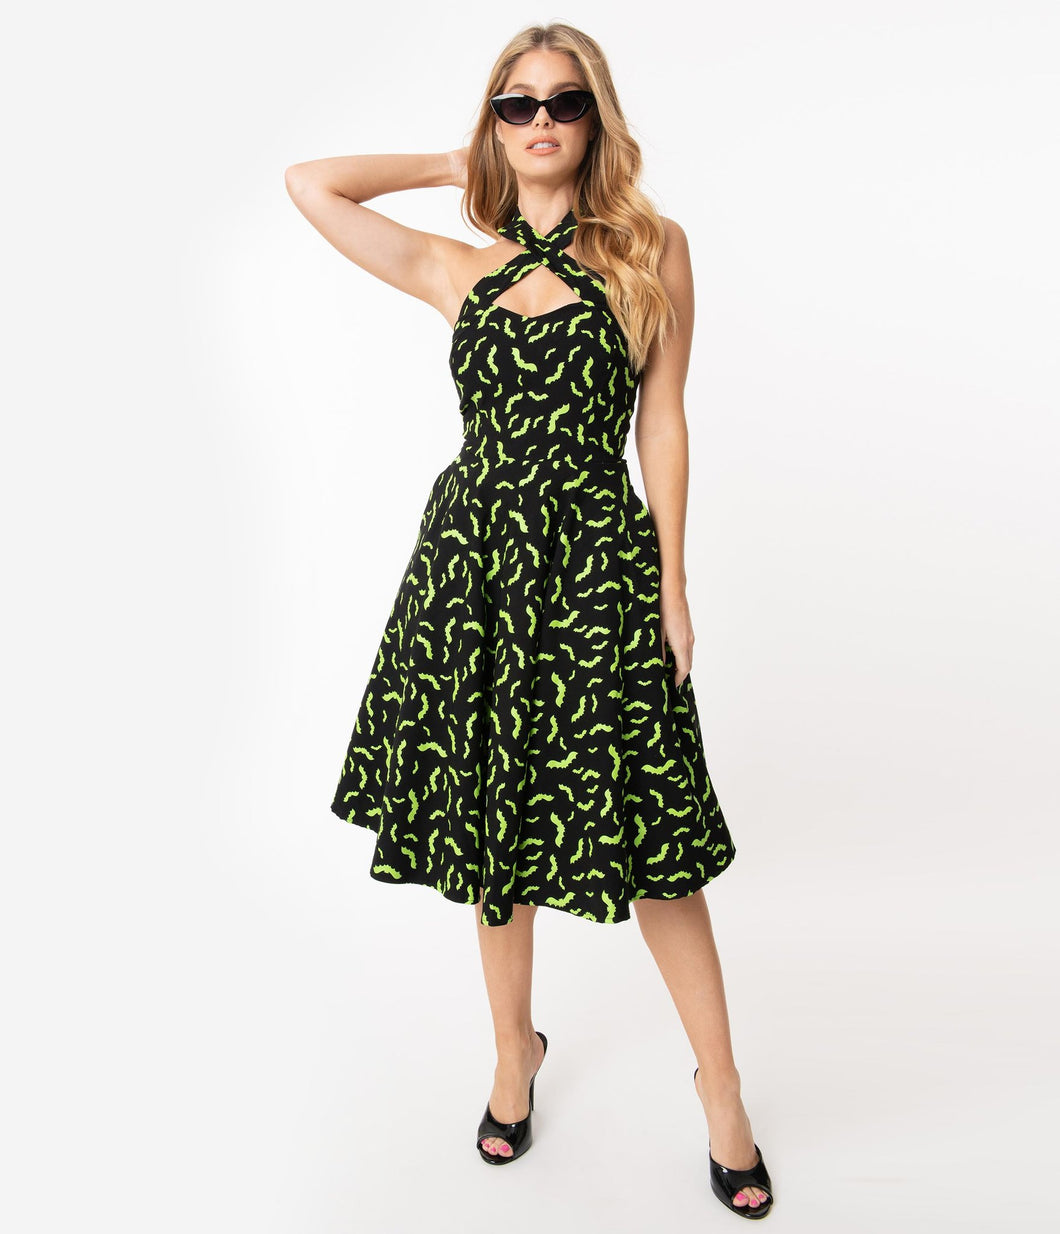 neon green bat dress